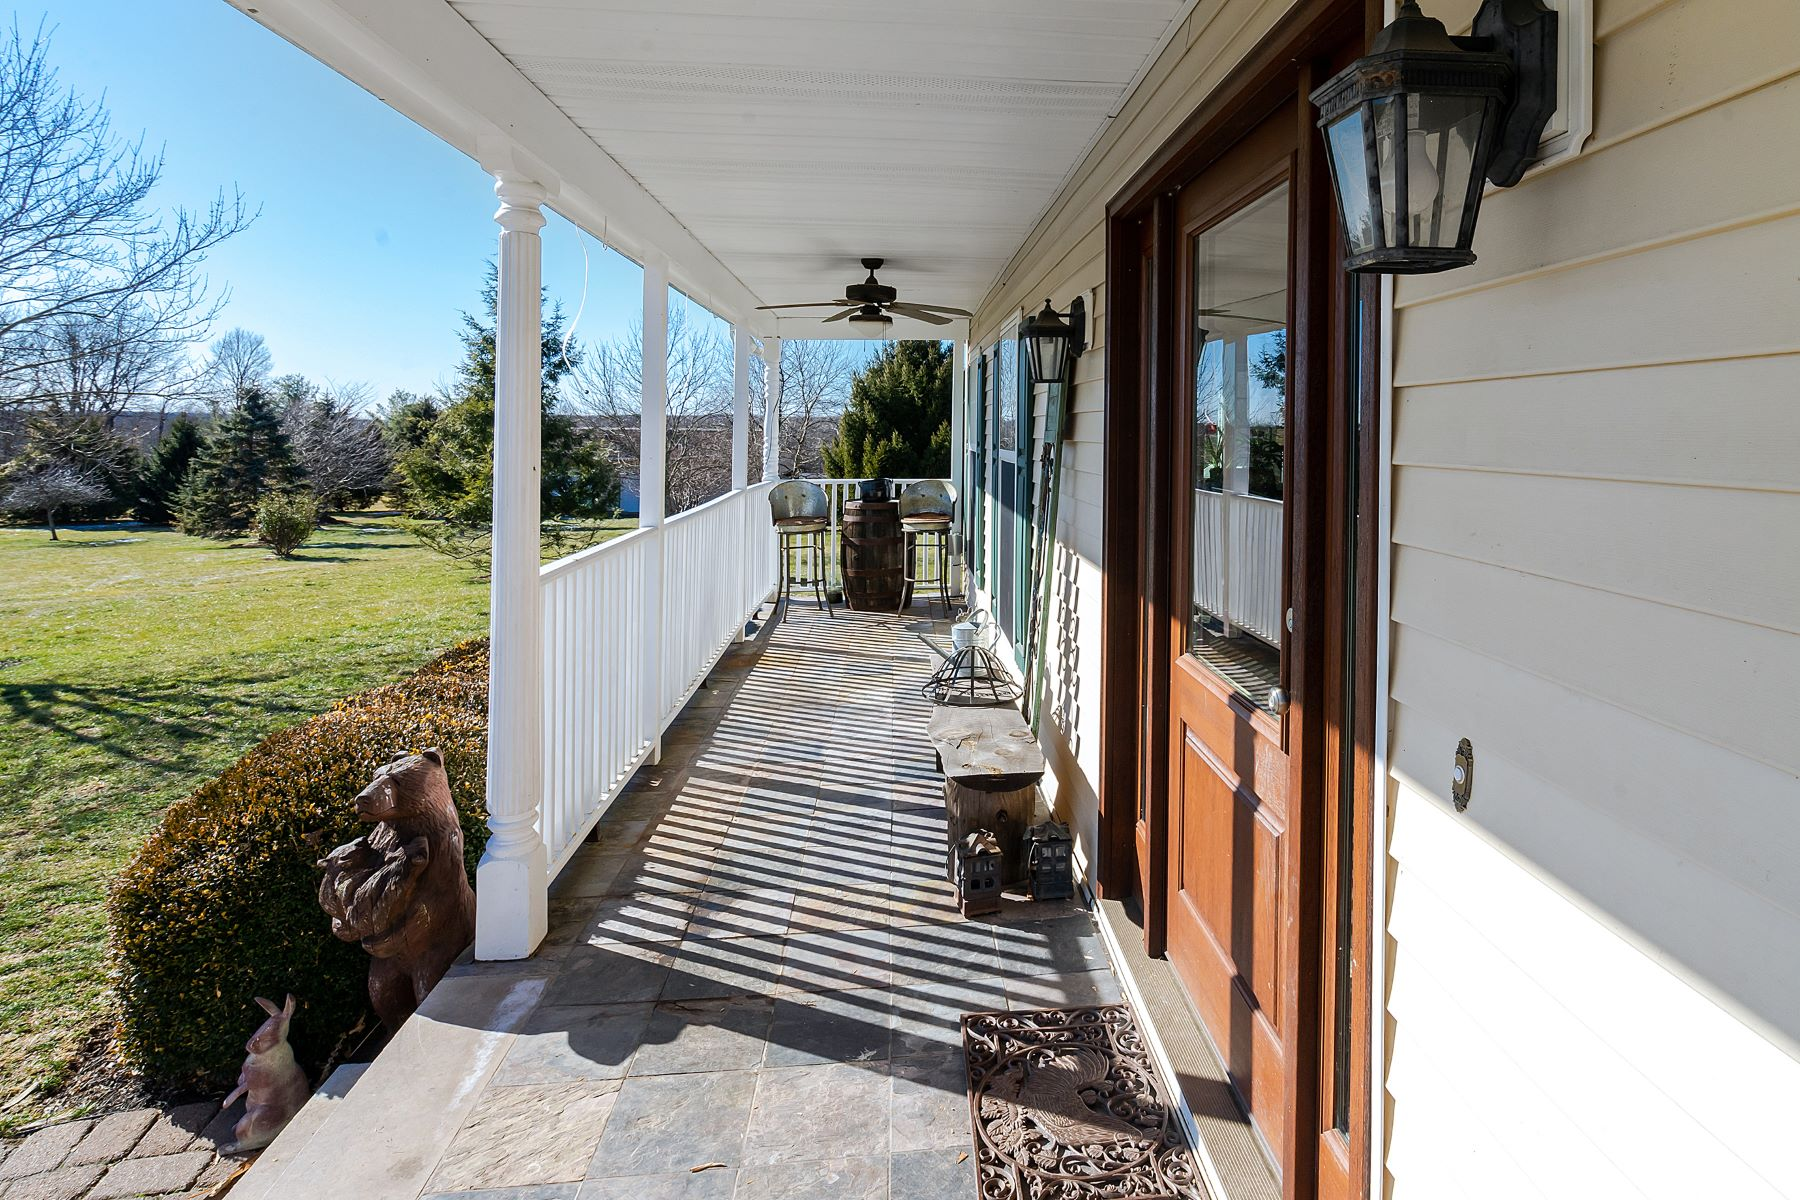 Additional photo for property listing at Magnificent Gentleman's Farm 10 Harvest Hill Drive Stockton, New Jersey 08559 United States